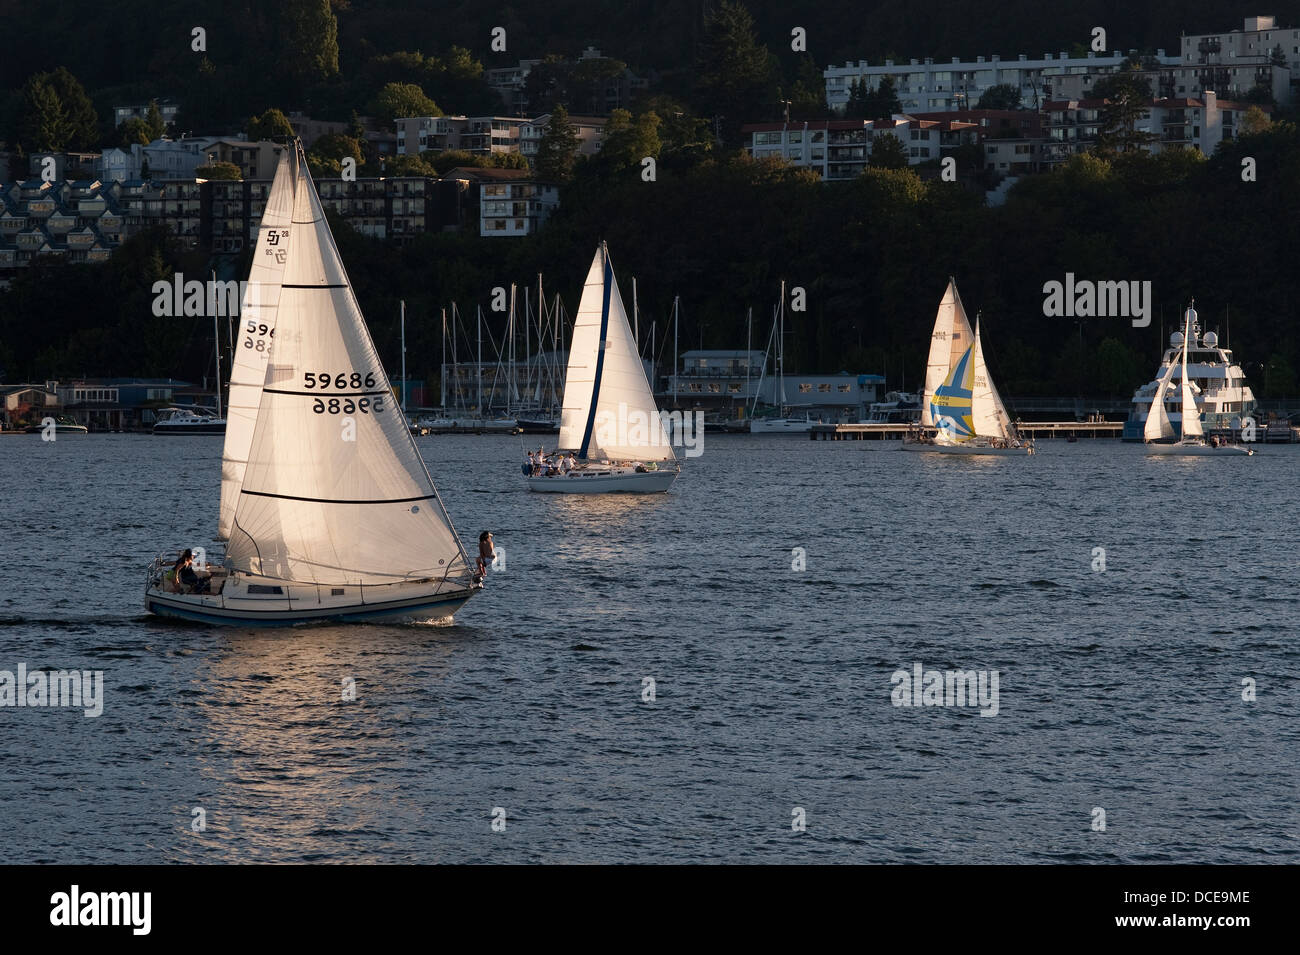 Sailboat race on Lake Union Seattle Washington State - Stock Image